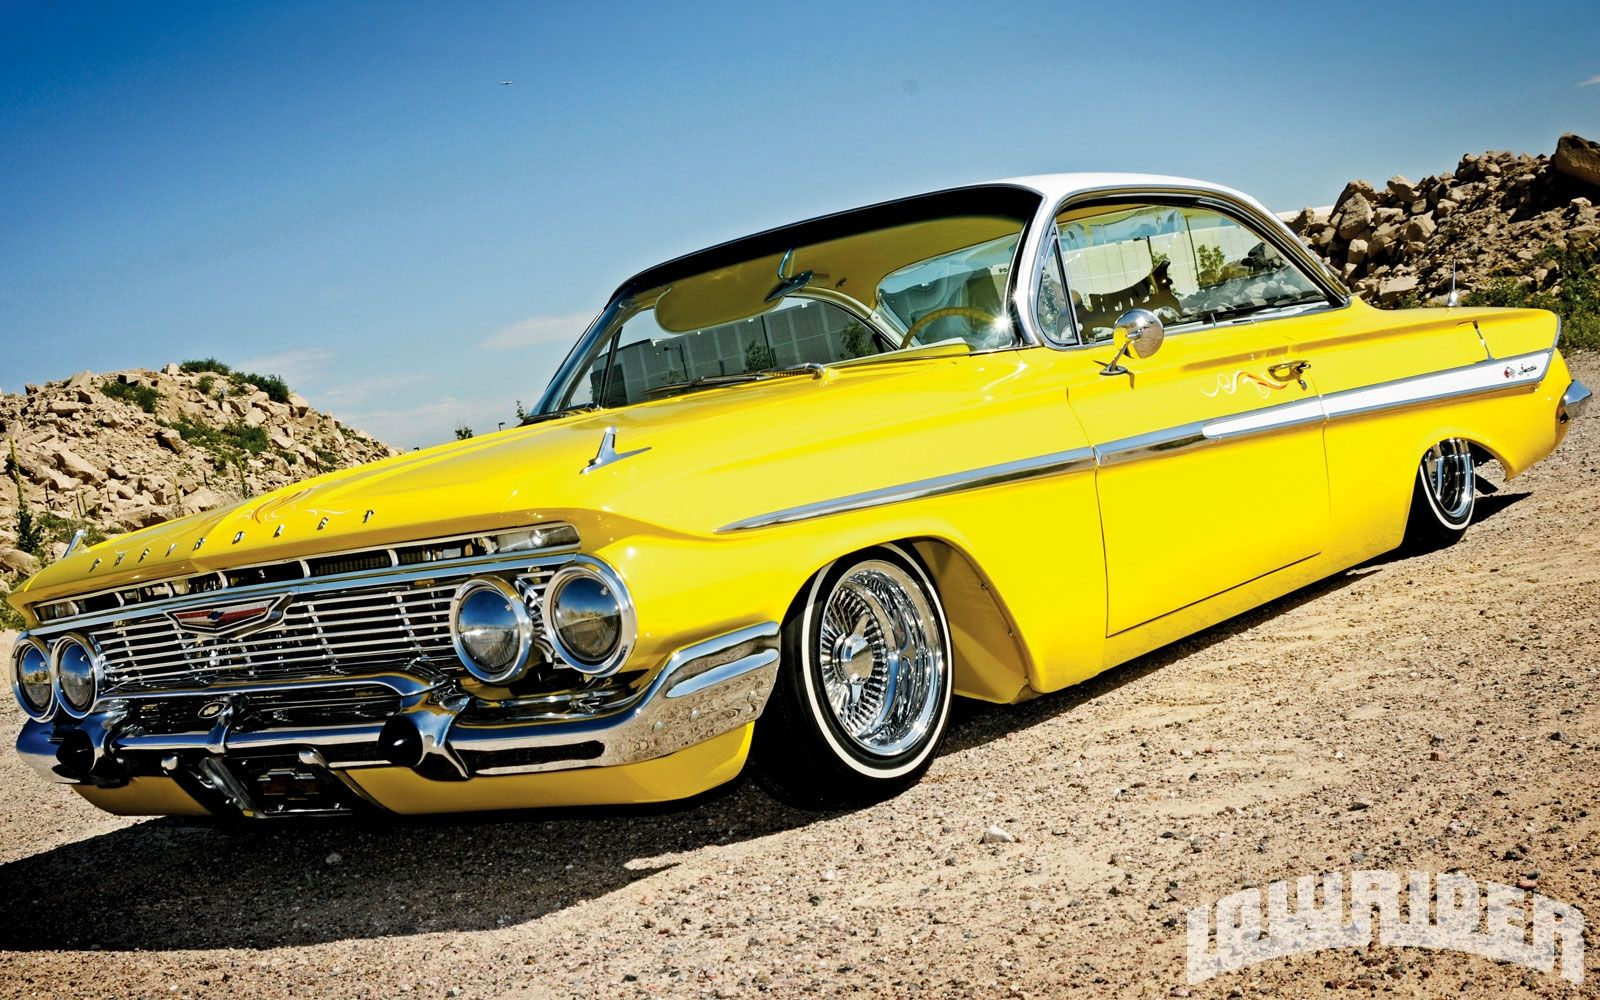 Image Detail For Custom Lowrider Cars And Pictures Of Lowriders